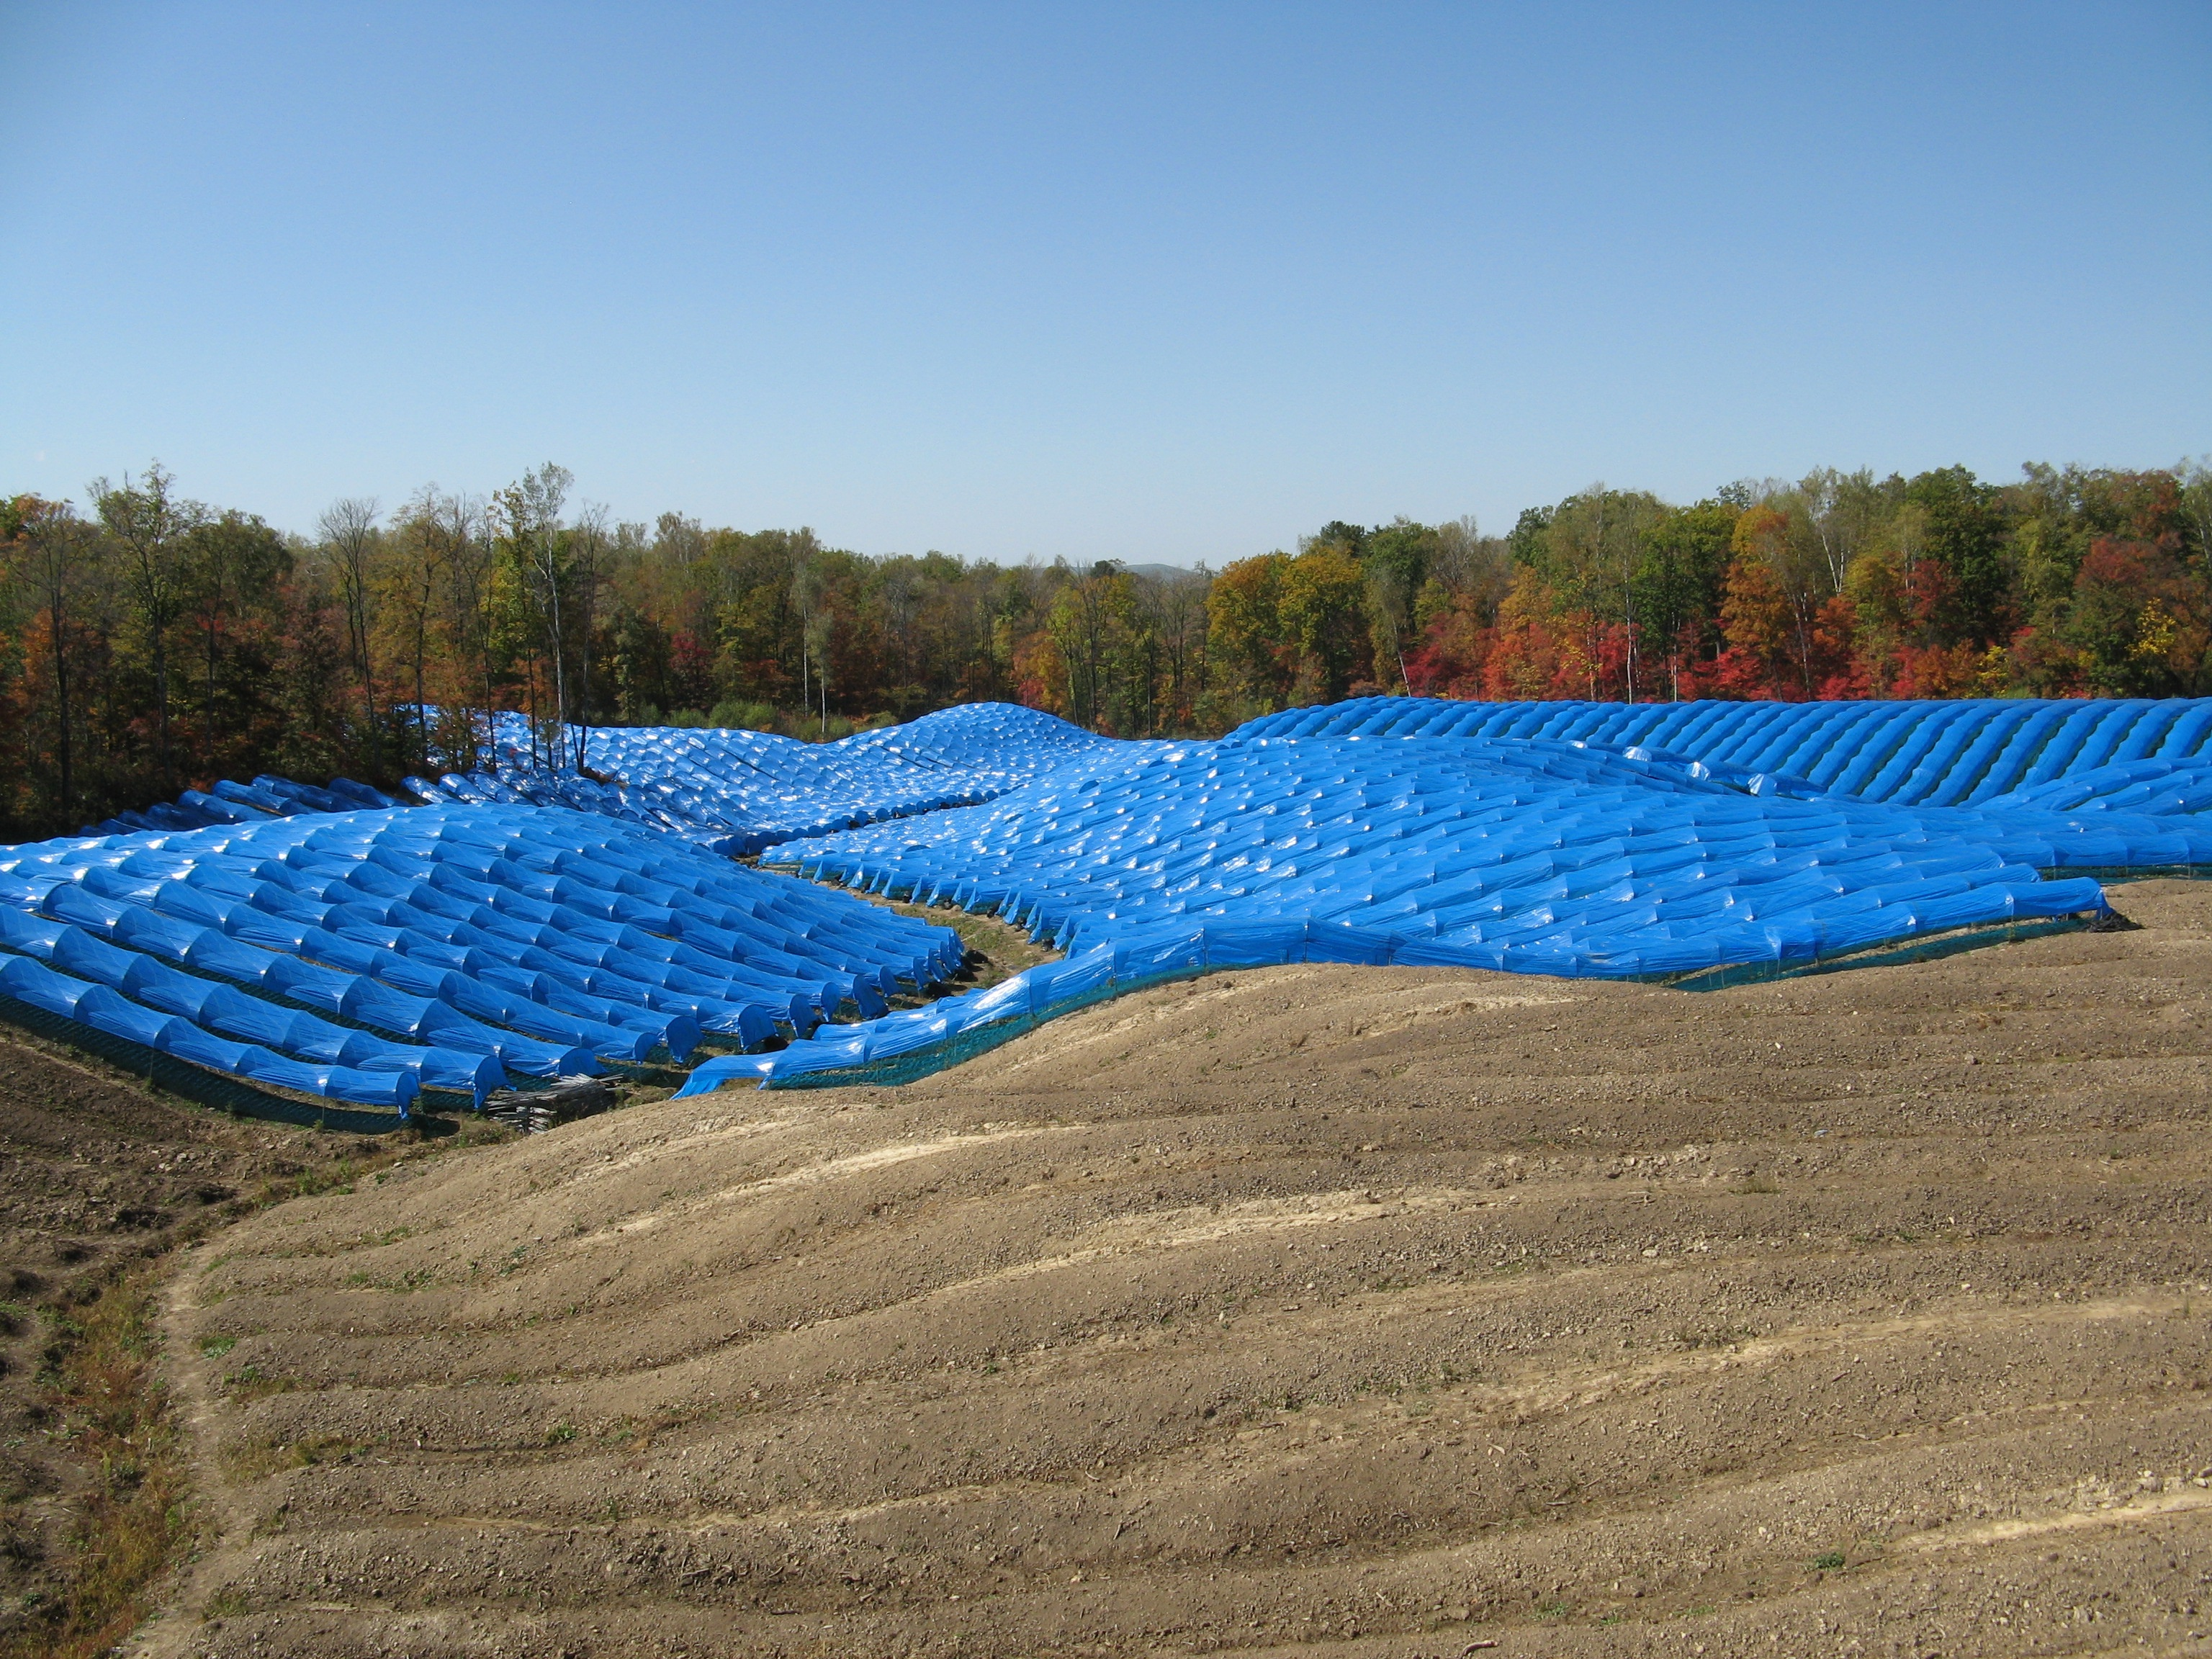 Hoop houses made from blue plastic shade red ginseng in a field in China